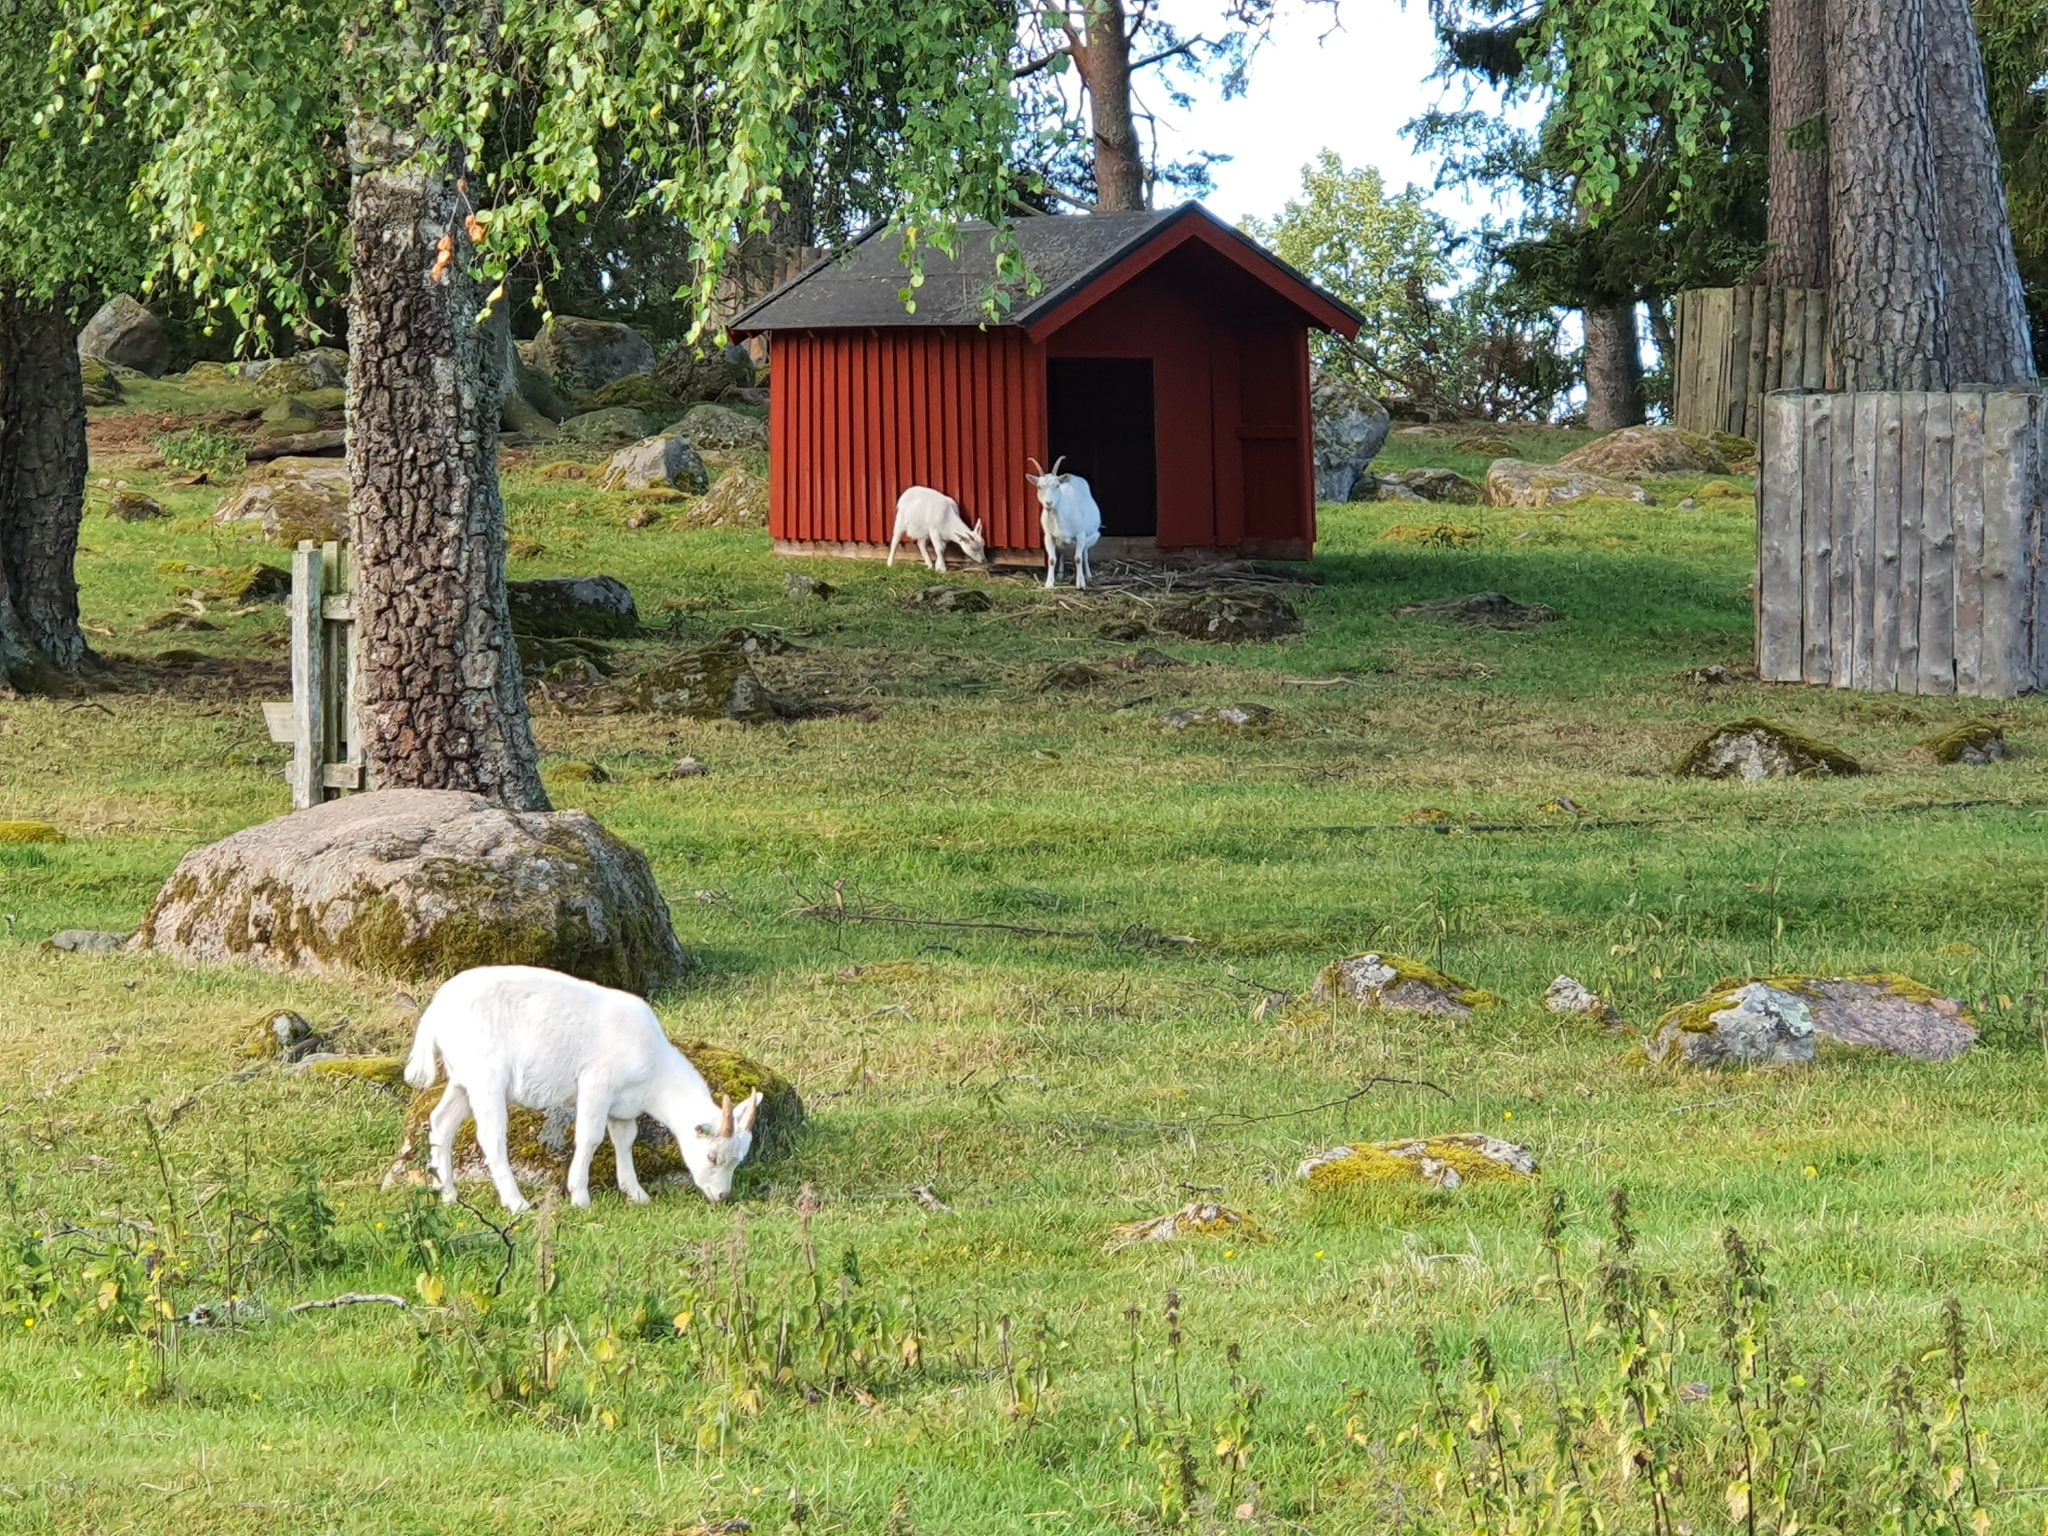 Goats in Lill-Valla Playground